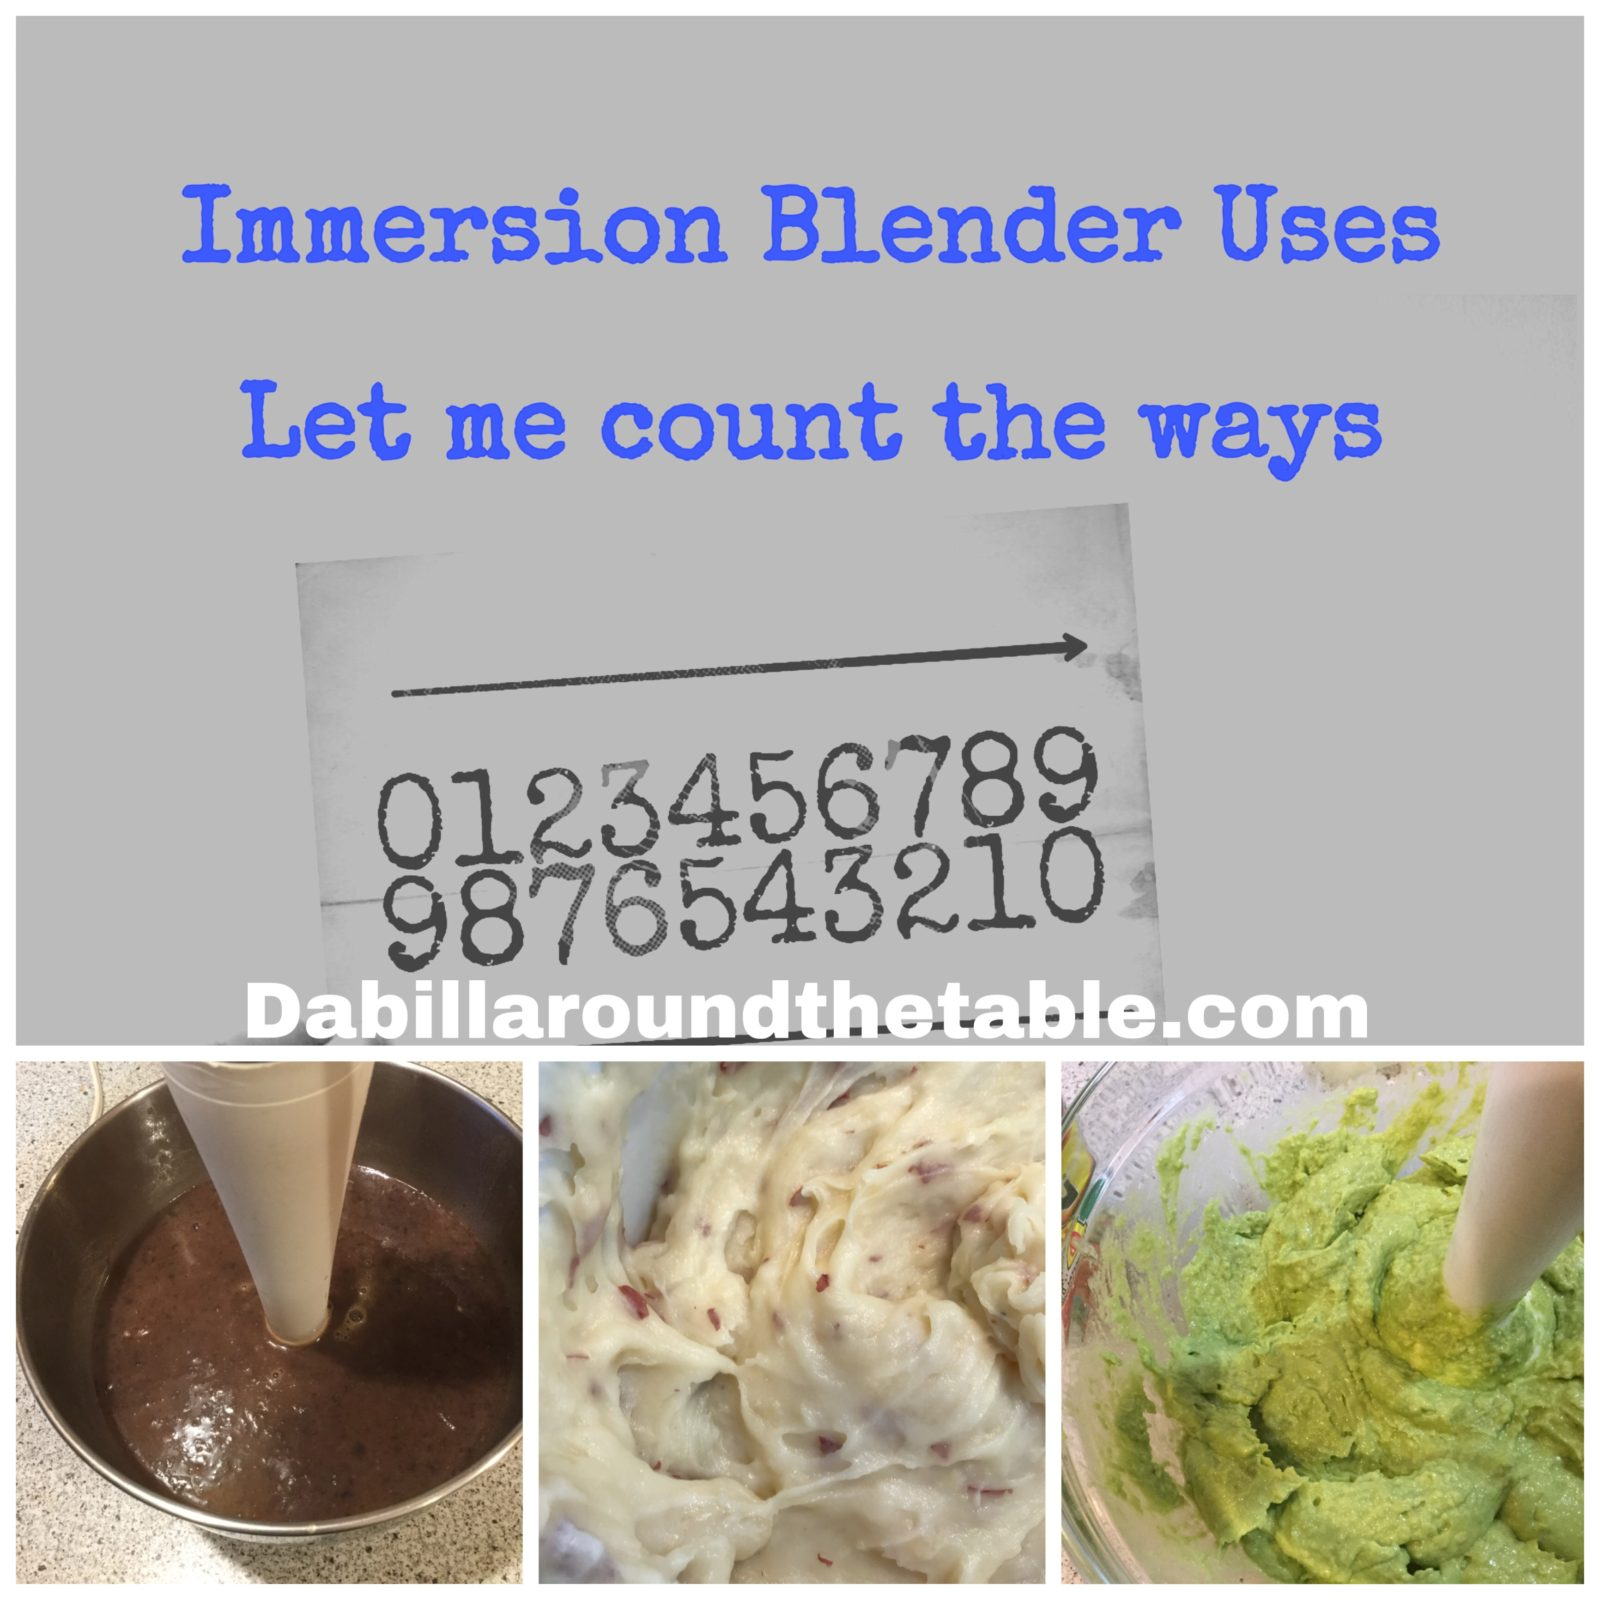 12 immersion Blender uses: Let me count the way